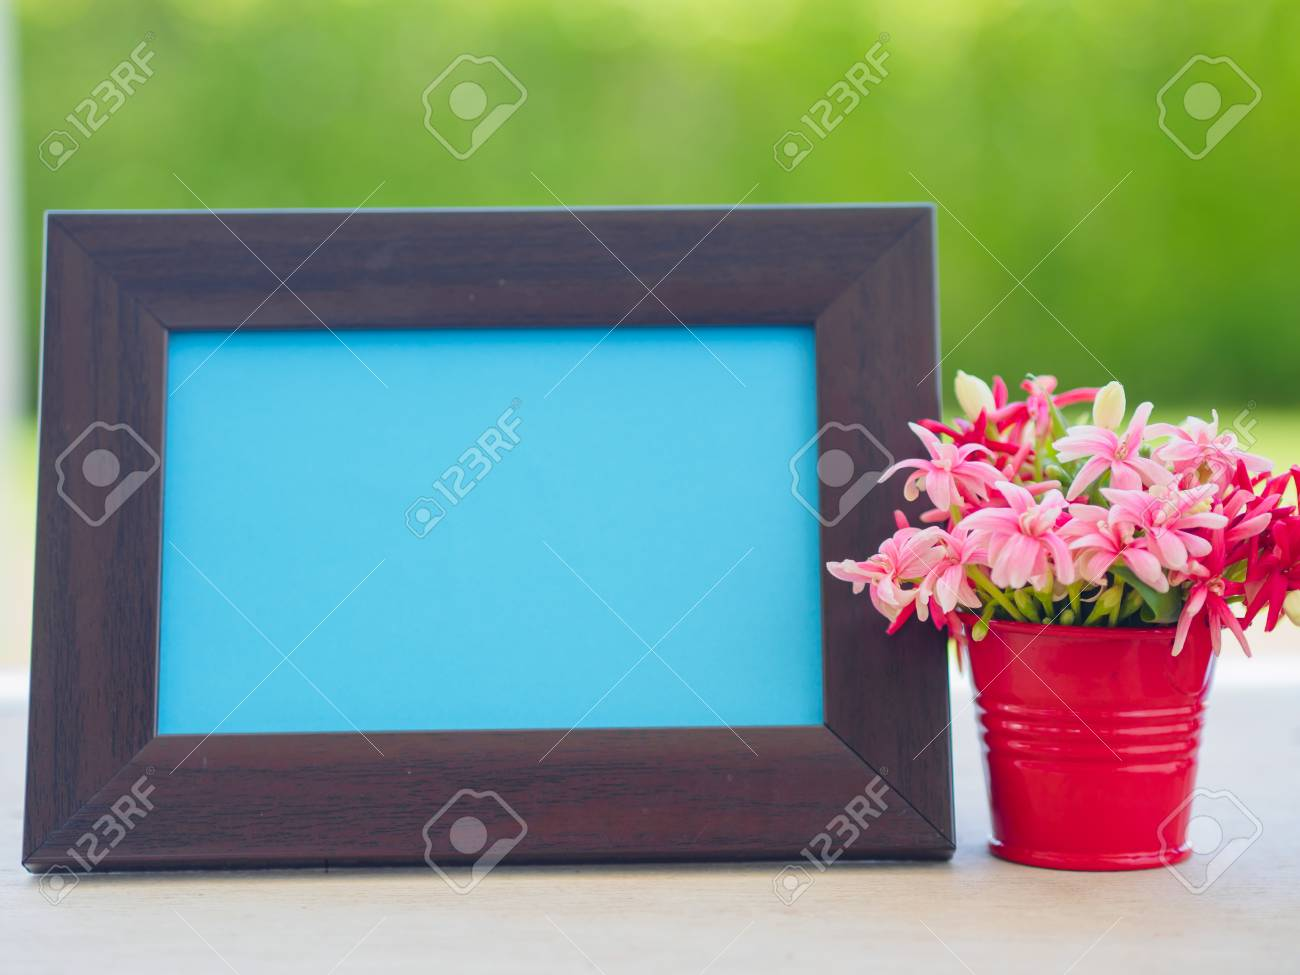 Poster Mock Up Template With Flower Bouquet, Marshmallow In The ...